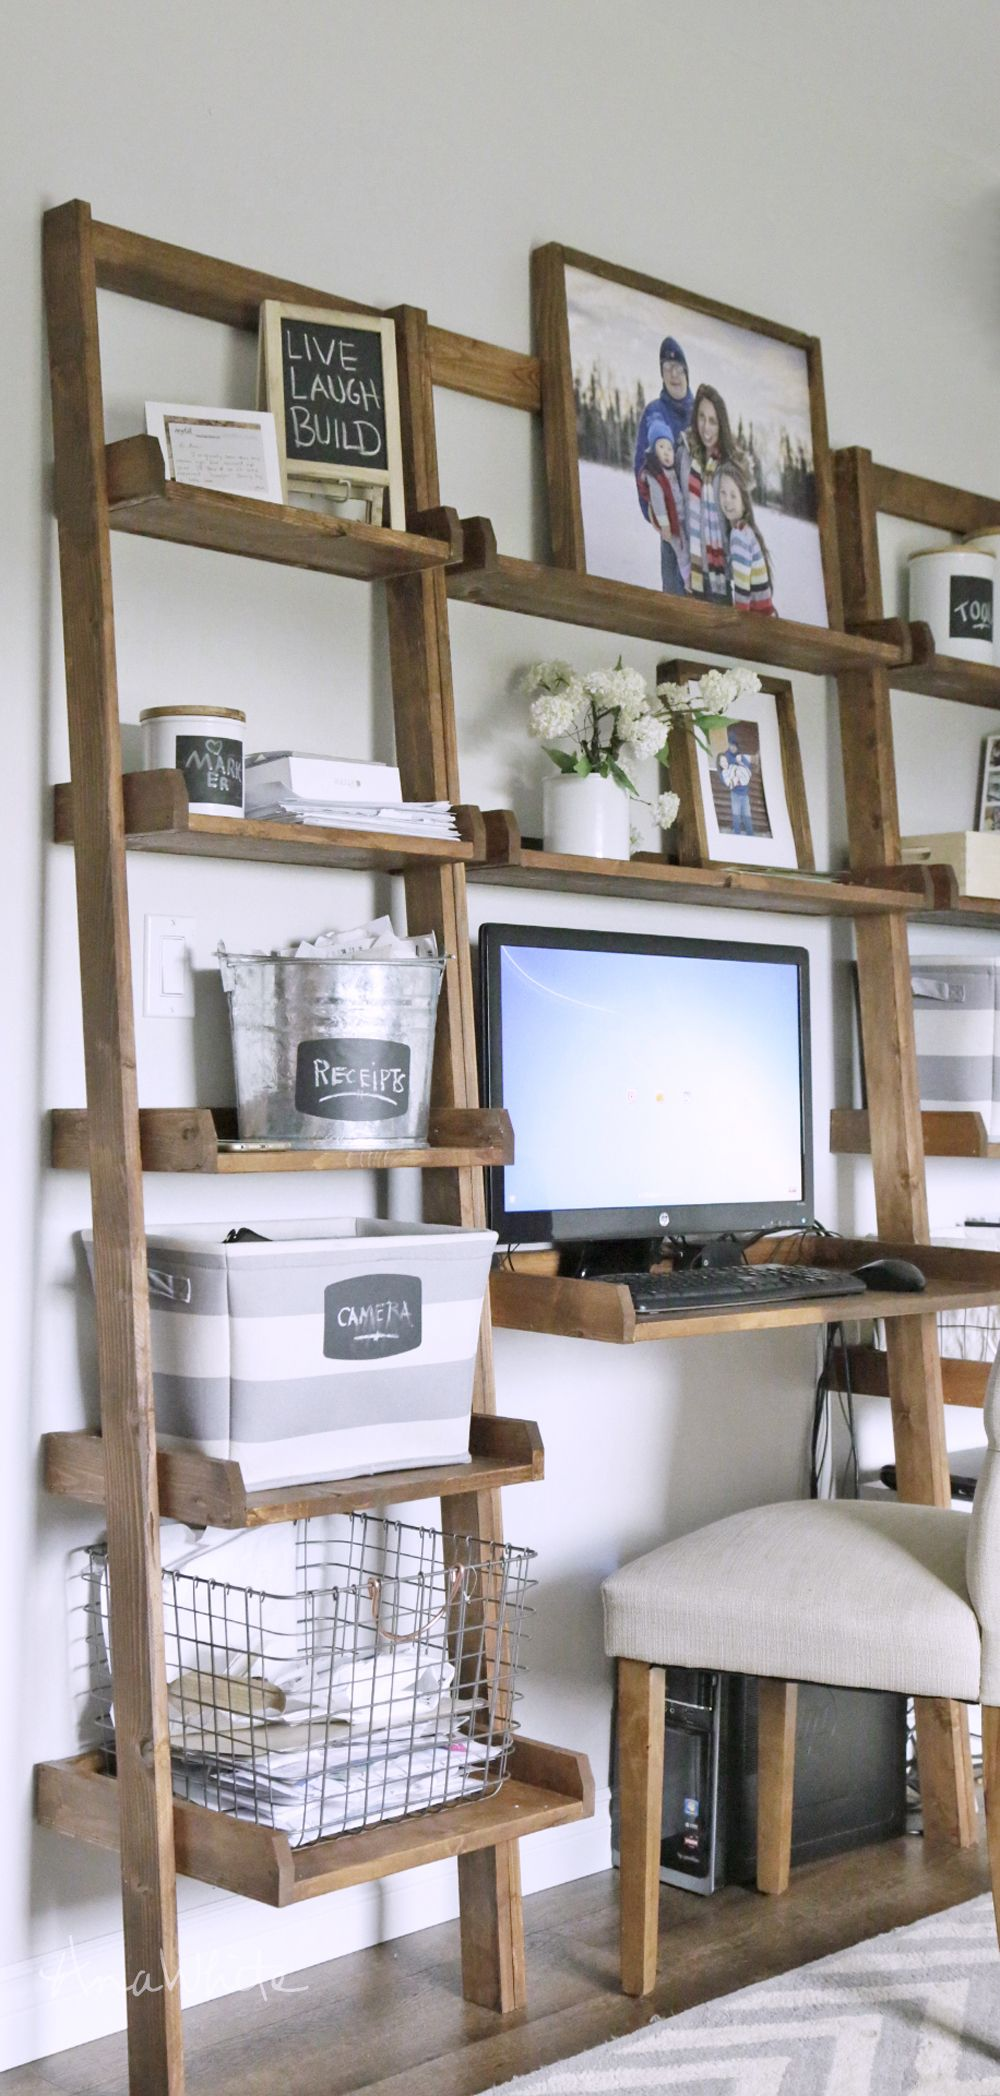 Ana White Build A Leaning Ladder Wall Bookshelf Free And Easy Diy Project